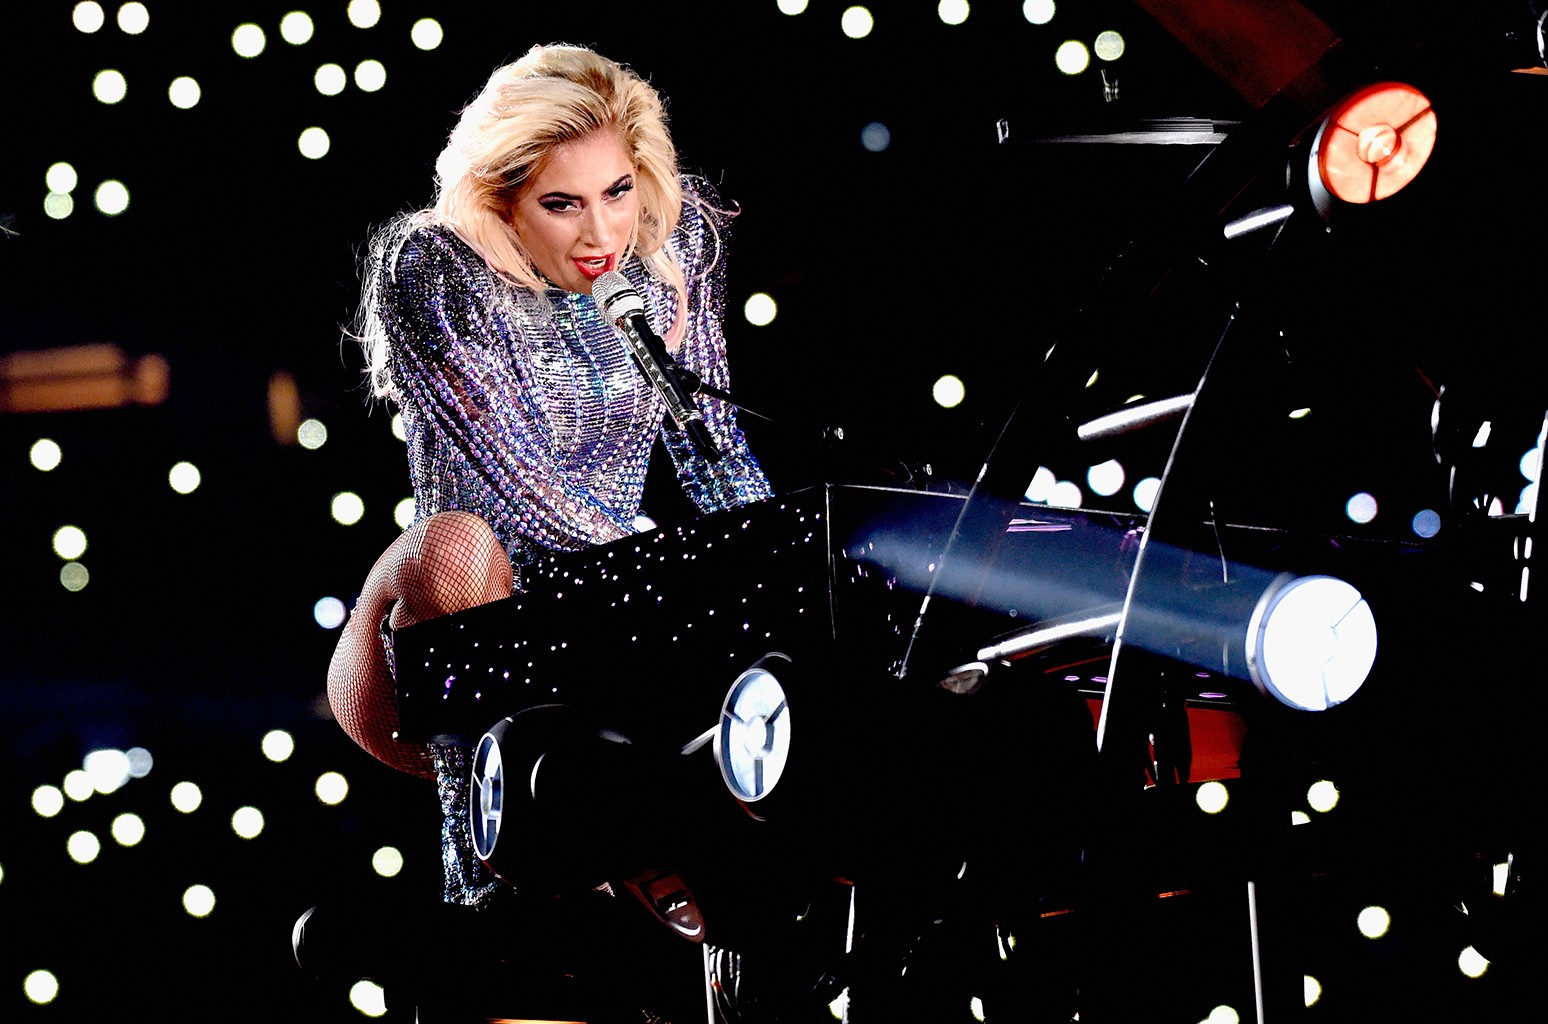 Lady Gaga performs onstage during the Pepsi Zero Sugar Super Bowl LI Halftime Show at NRG Stadium on February 5, 2017 in Houston,